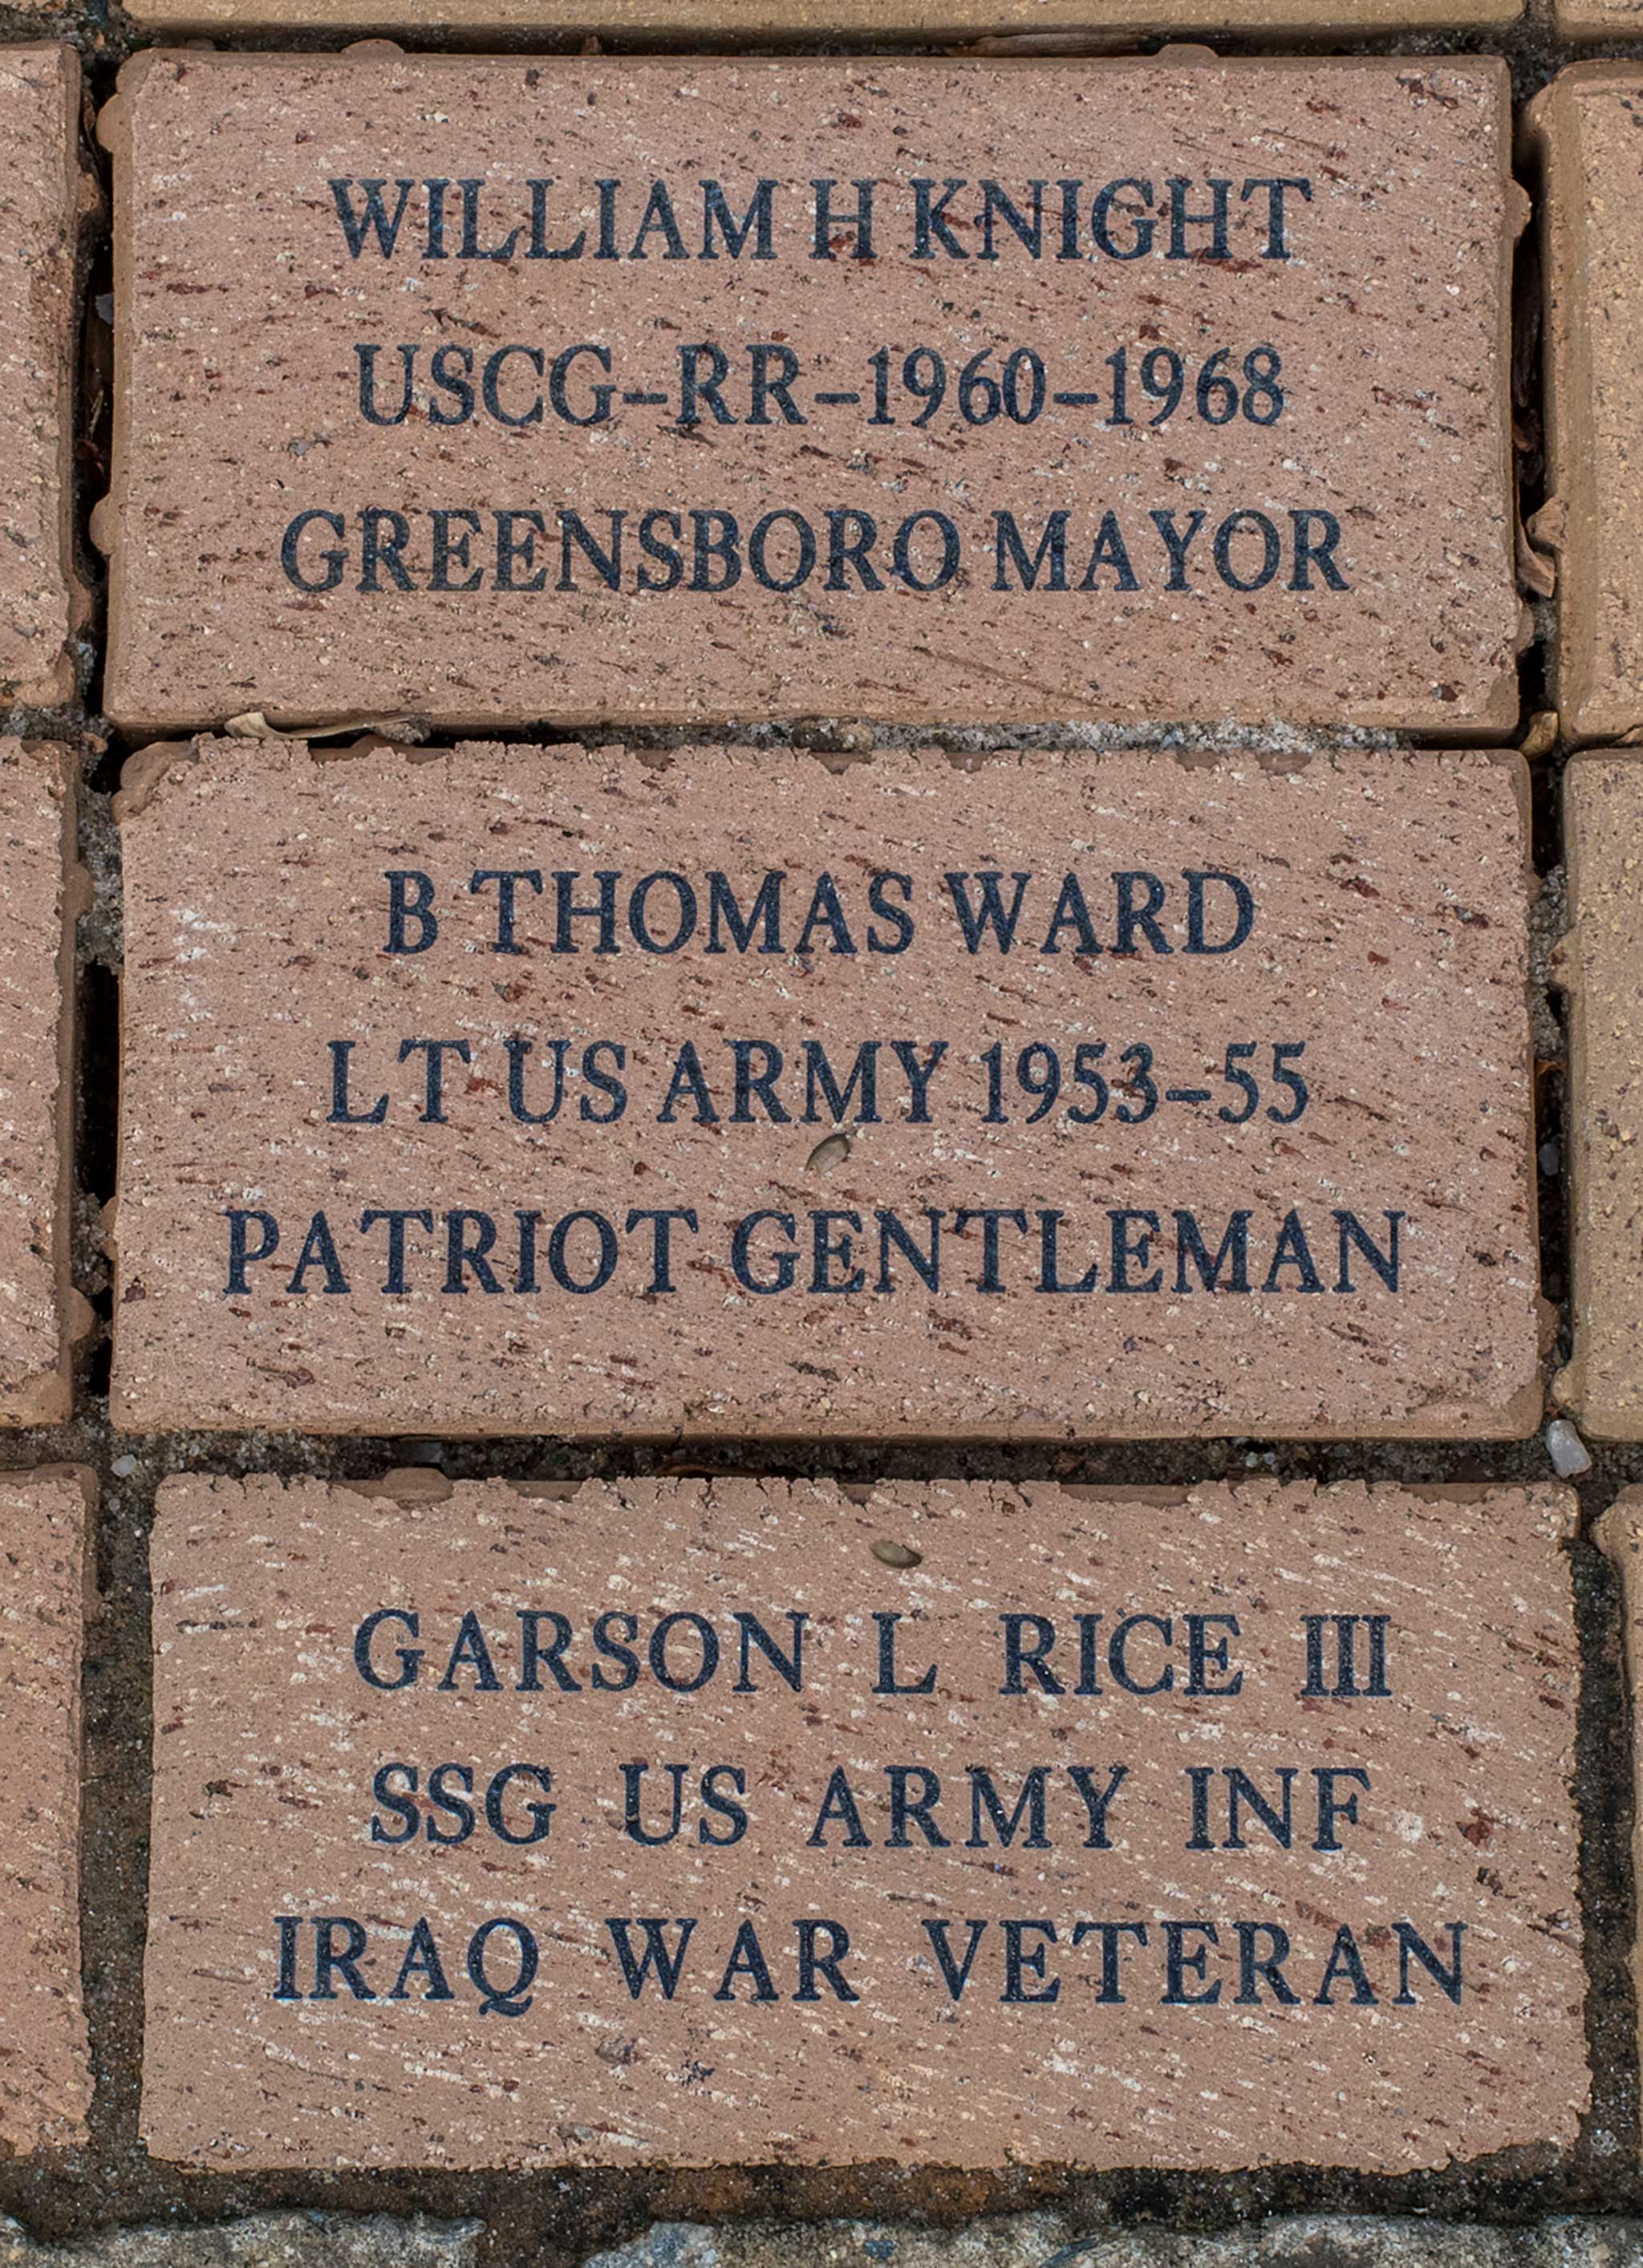 B THOMAS WARD LT US ARMY 1953-55 PATRIOT GENTLEMAN